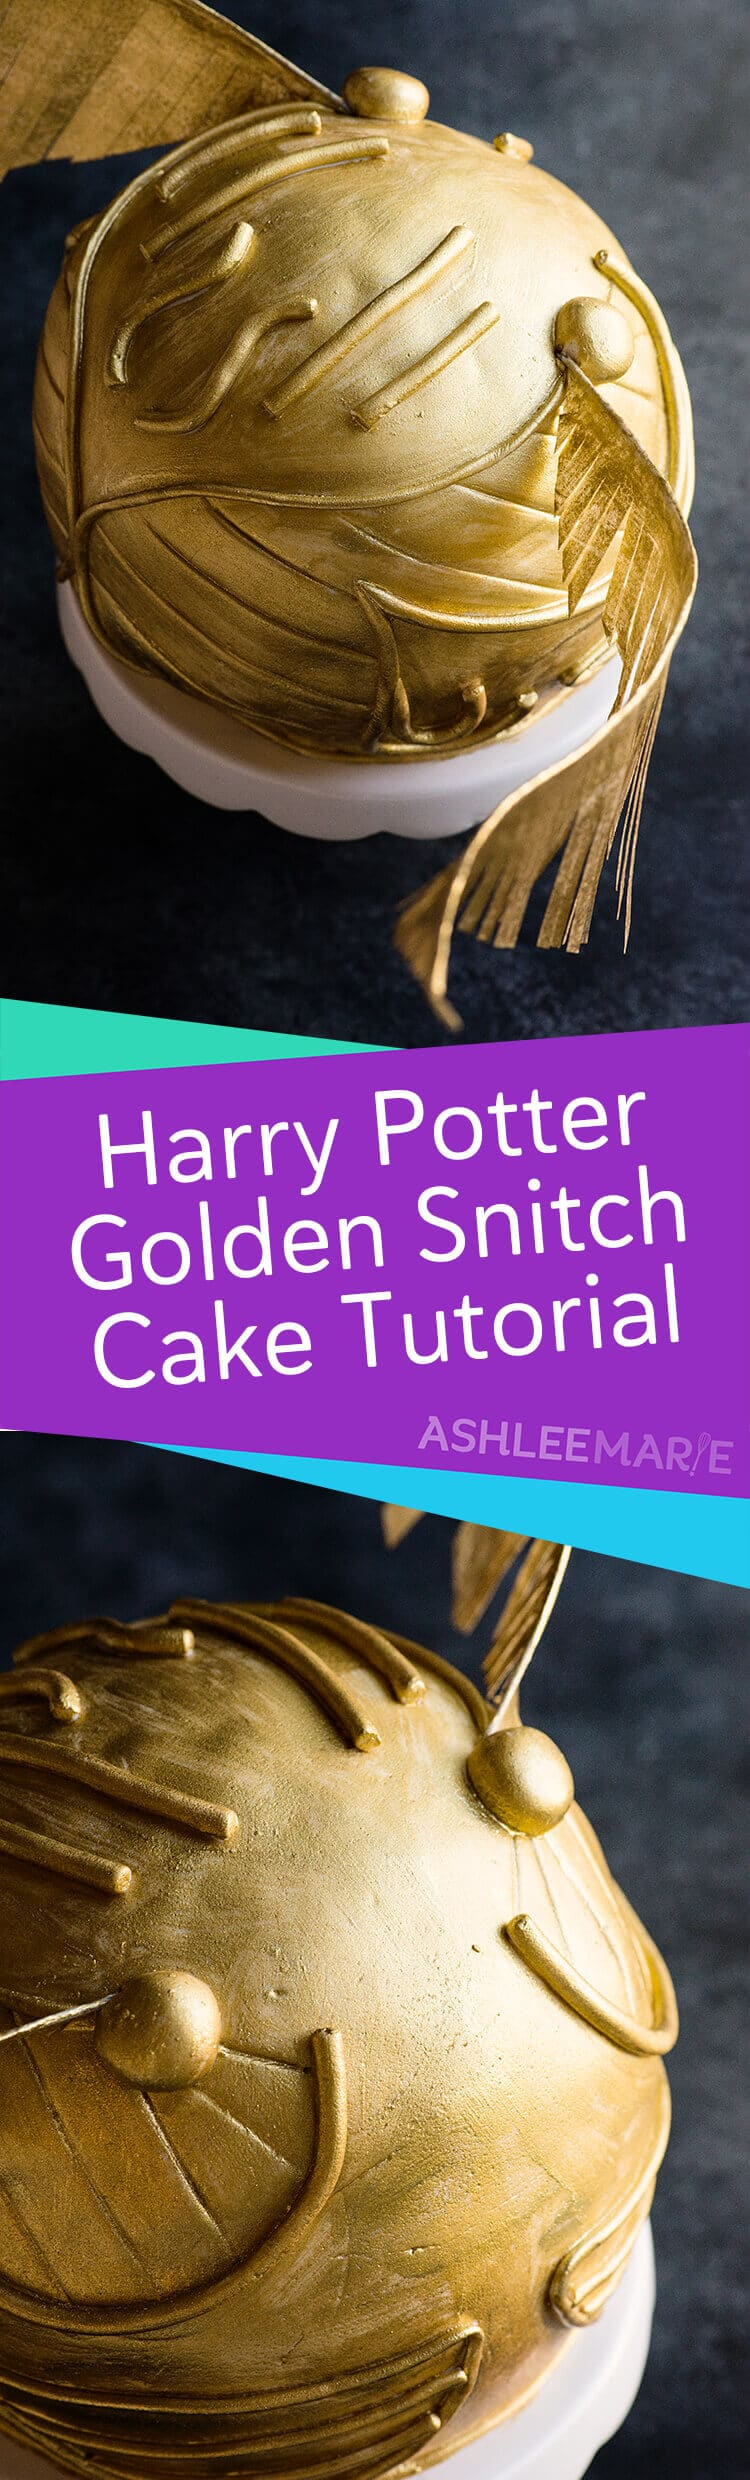 harry potter snitch cake tutorial